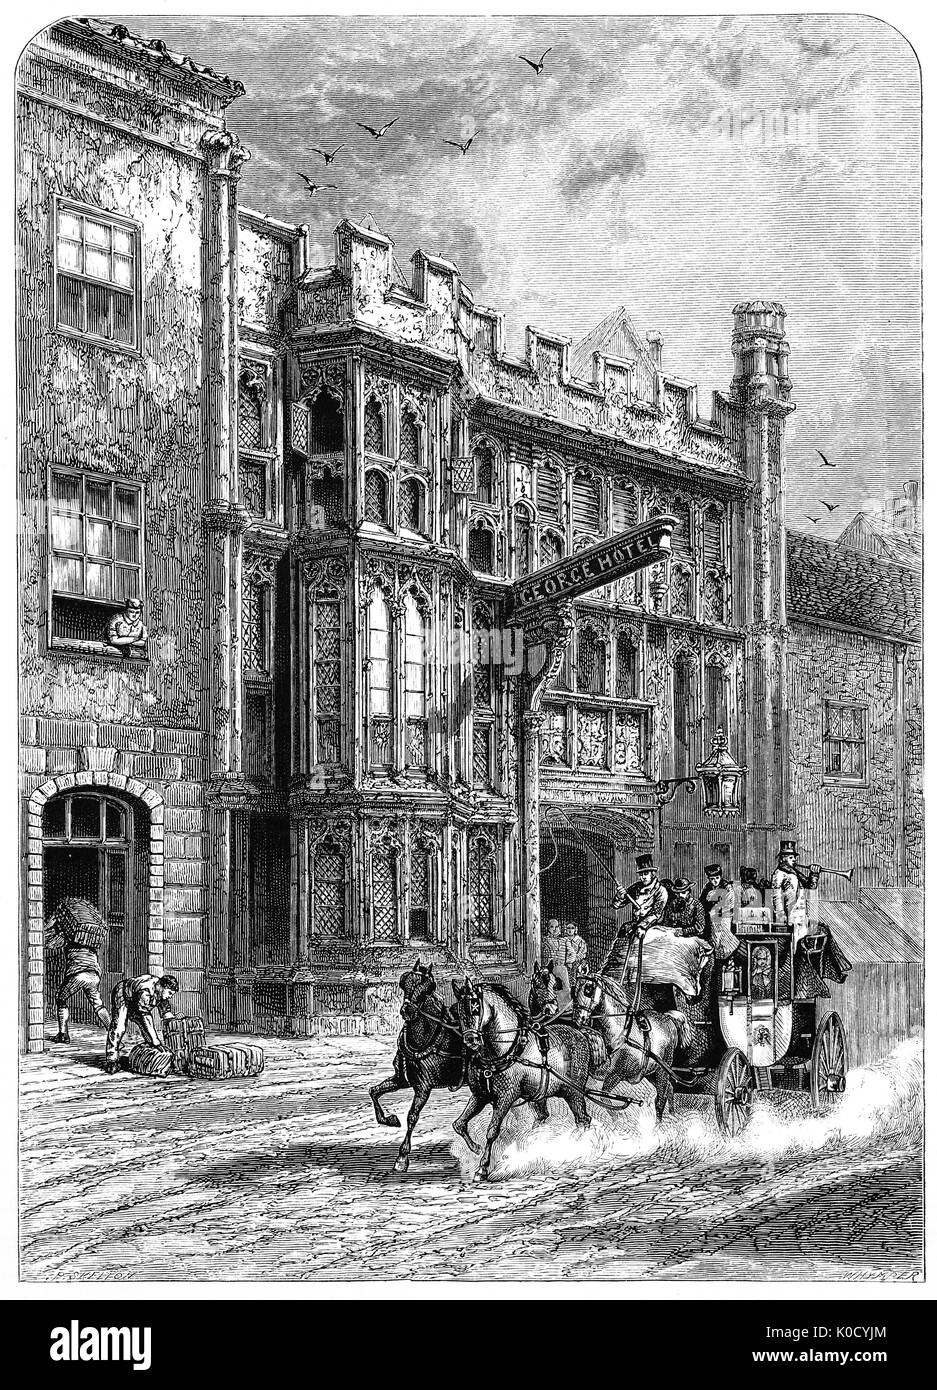 1870: Stagecoach passing the George Hotel and Pilgrims' Inn, in Glastonbury, Somerset, England. Built in the late 15th century (1439) to accommodate visitors to Glastonbury Abbey it's  the oldest purpose built public house in the South West of England. - Stock Image